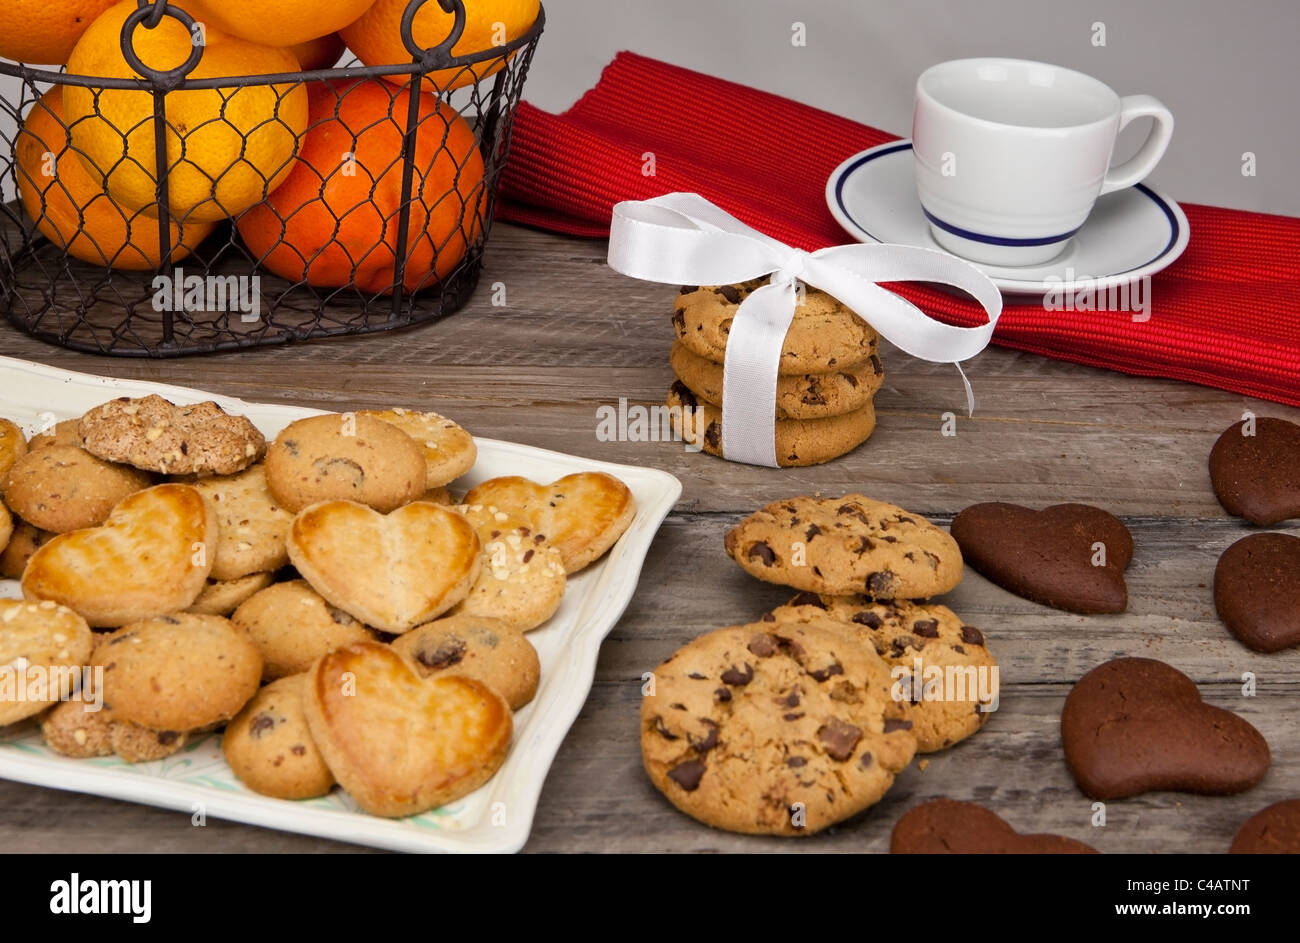 Decorated table for a snack with fruit, milk and cookies - Stock Image